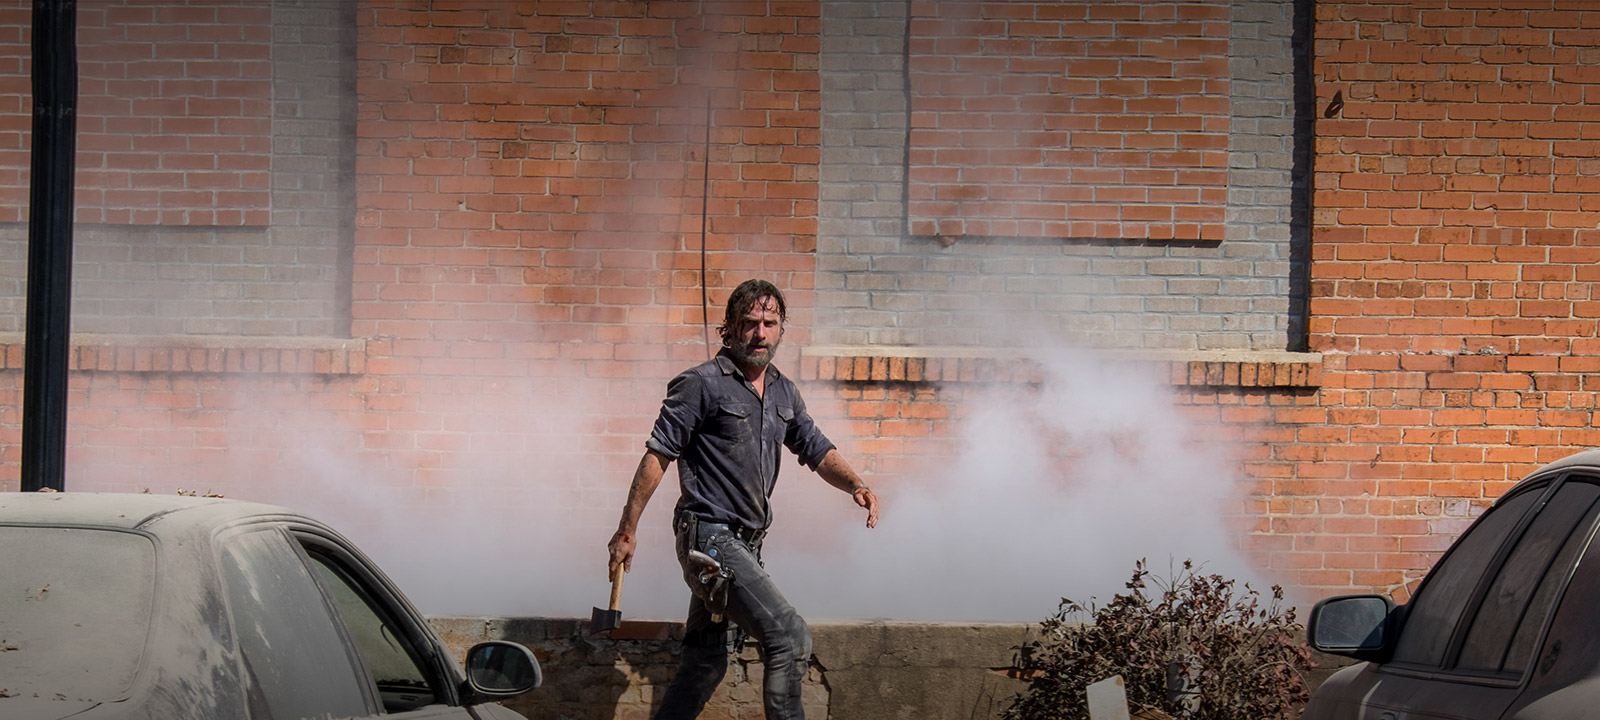 the-walking-dead-episode-812-rick-lincoln-pre-800×600